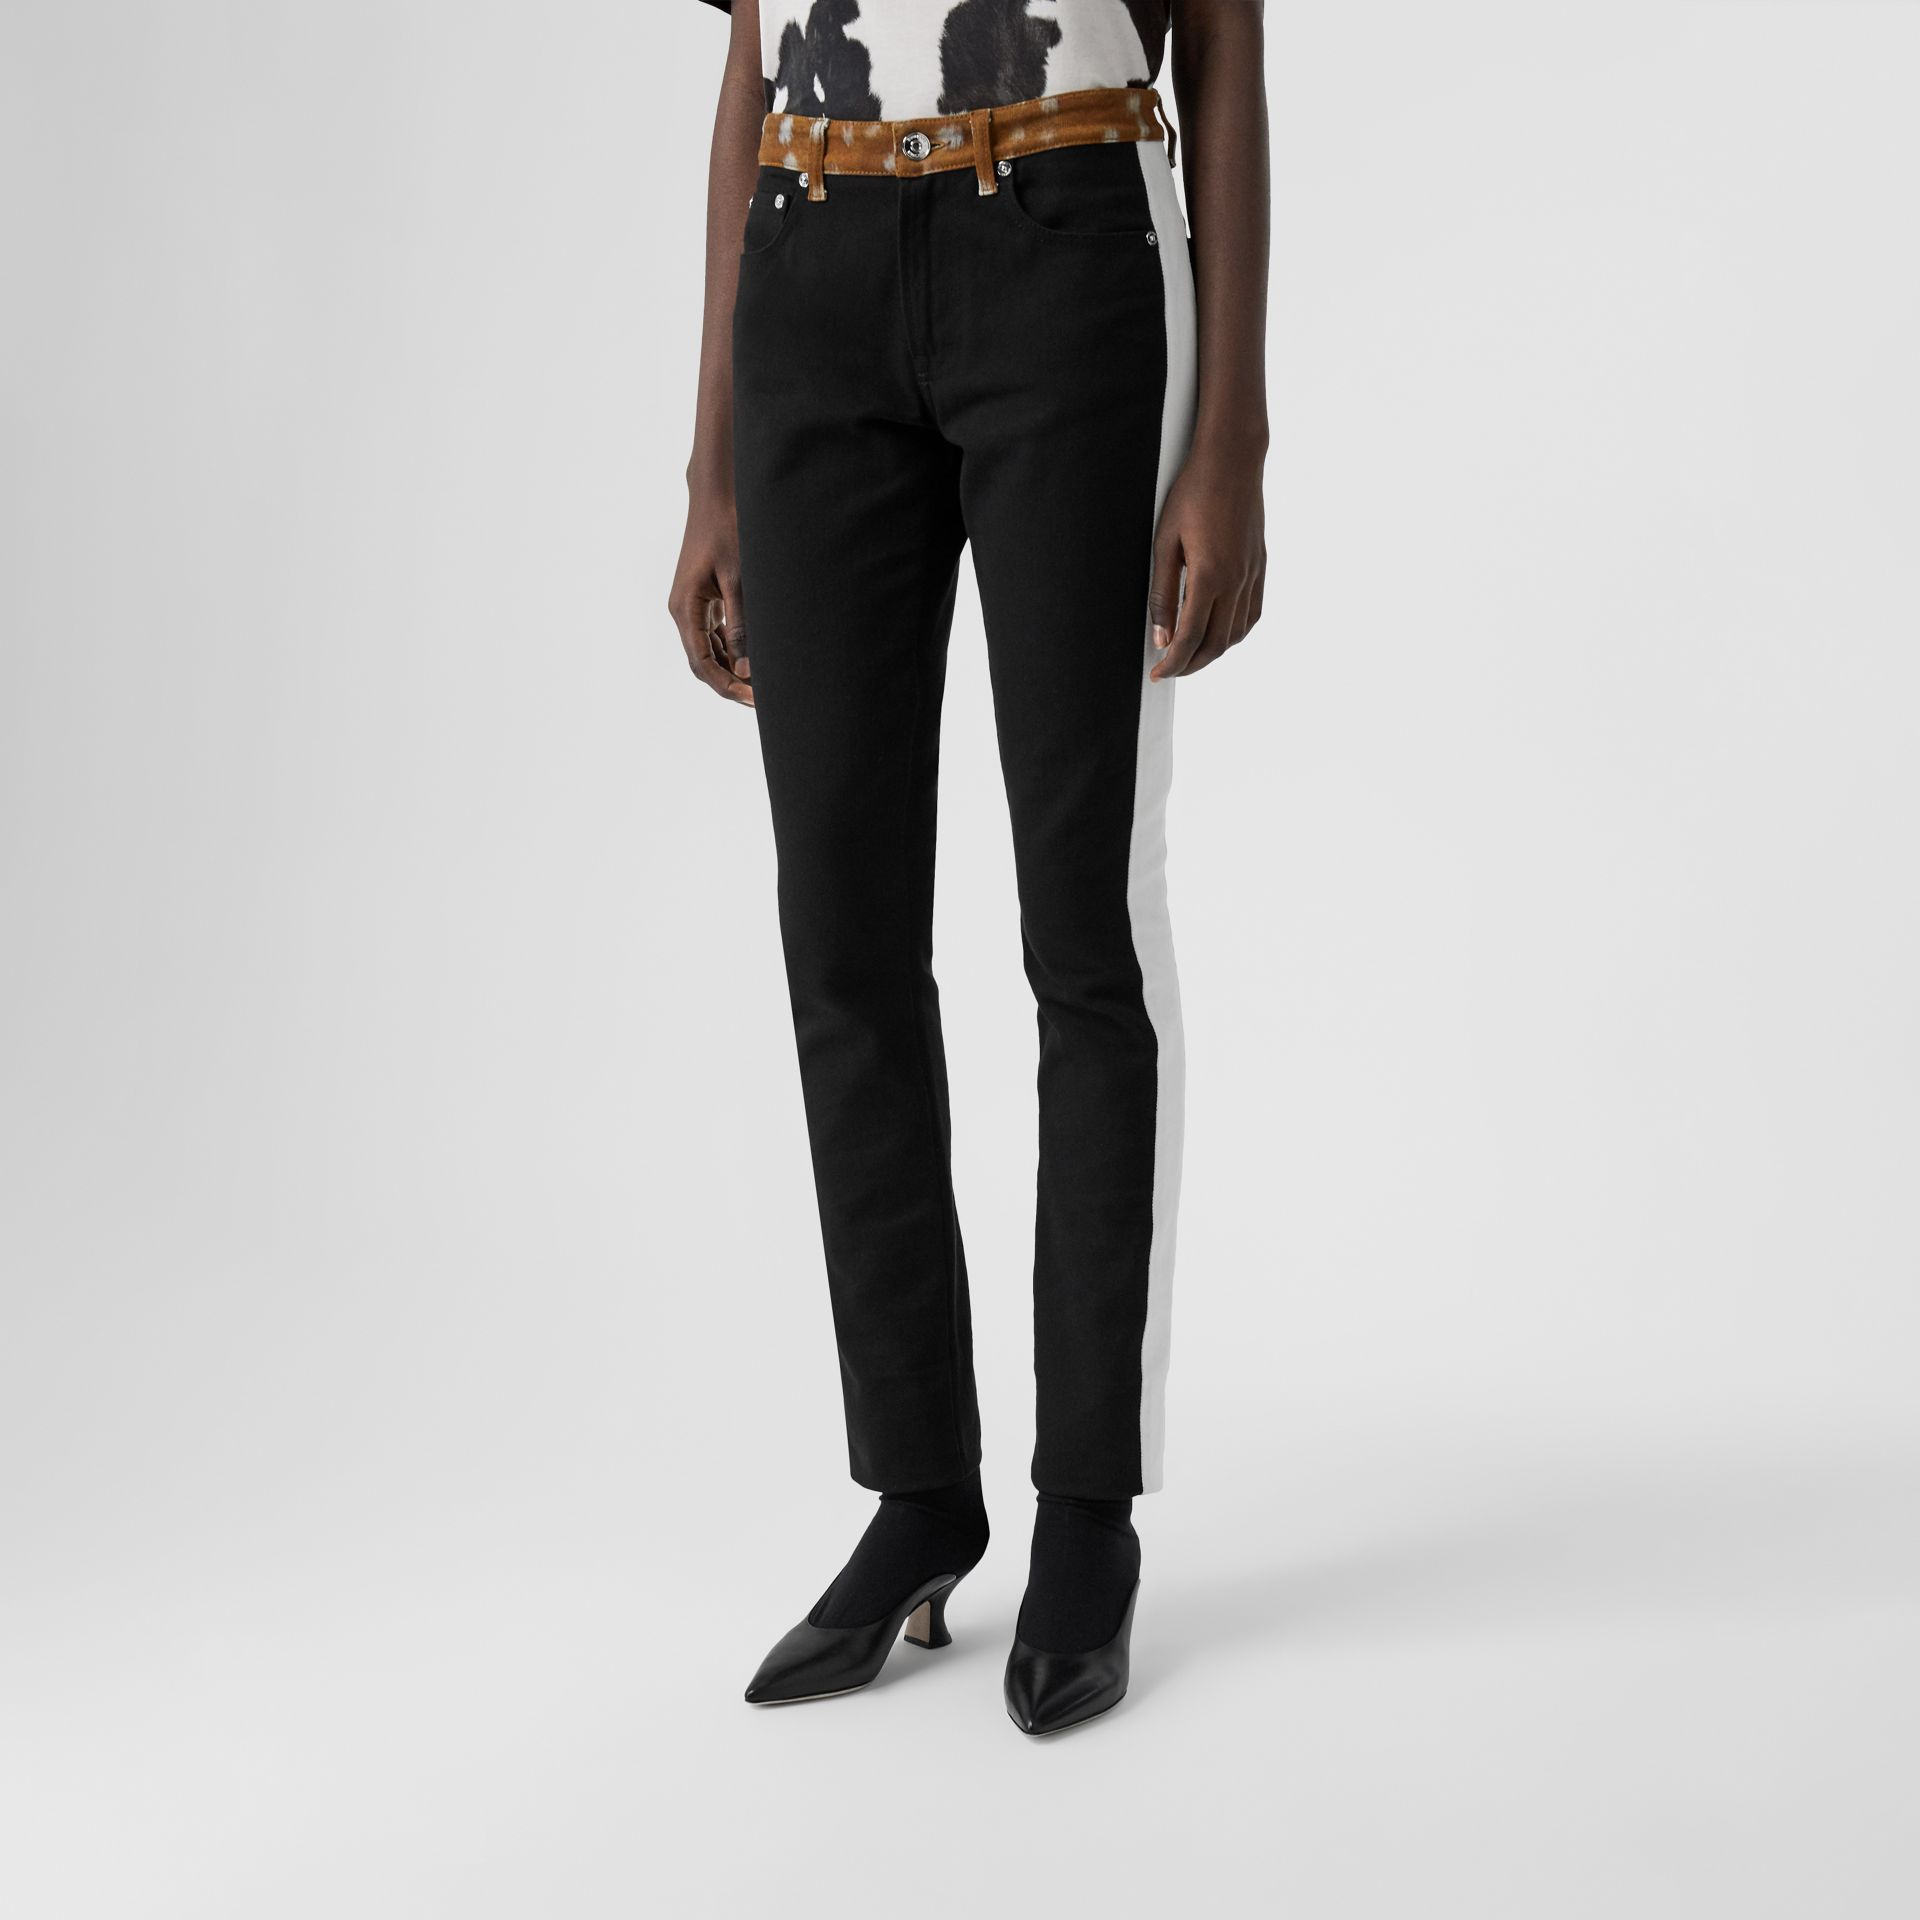 Straight Fit Deer Print Trim Japanese Denim Jeans in Black - Women | Burberry - gallery image 5